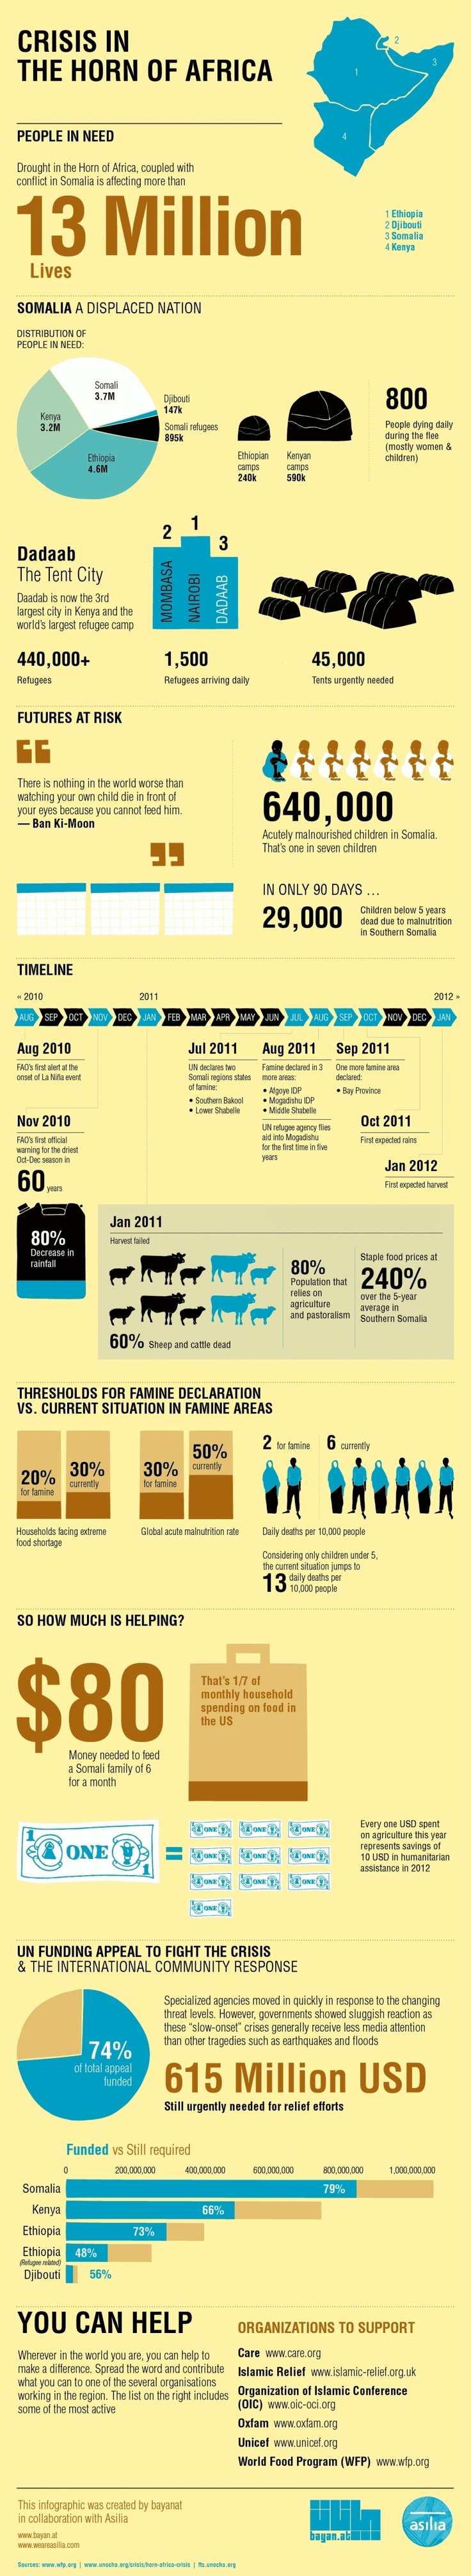 Famine at the Horn of Africa Infographic